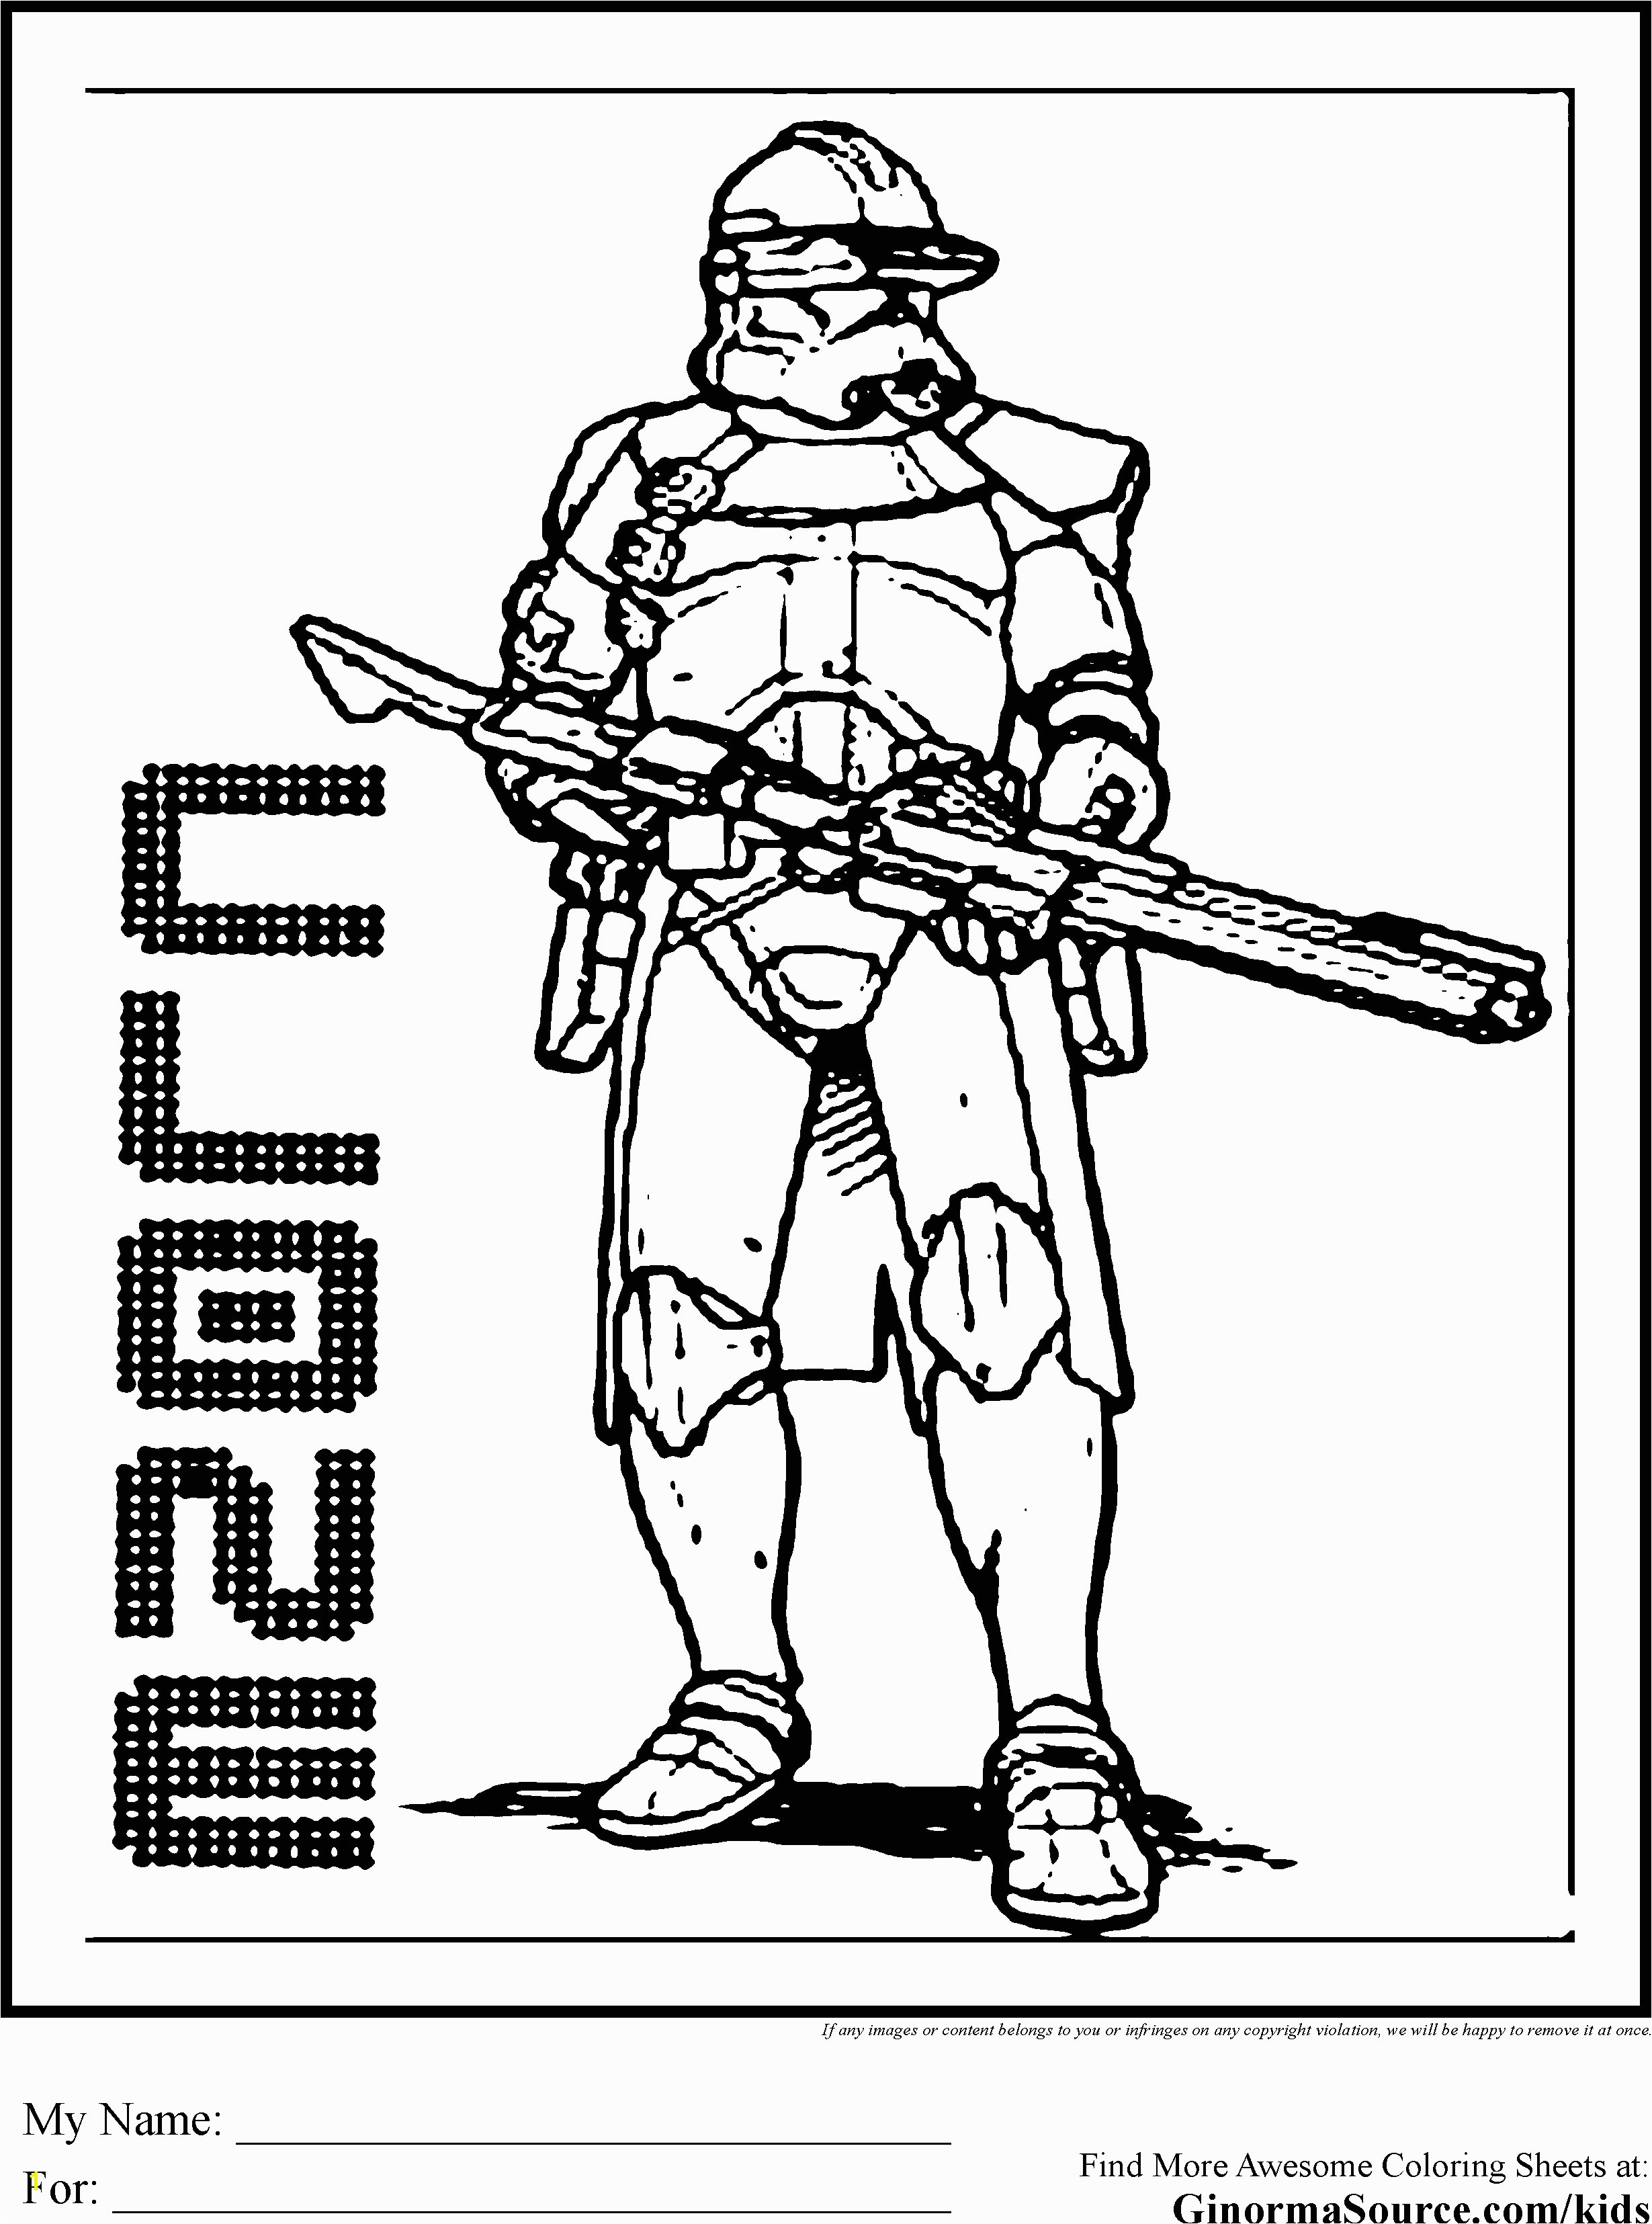 Star Wars Coloring Pages for Adults Star Wars Coloring Pages Awesome Best Star Wars Clone Wars